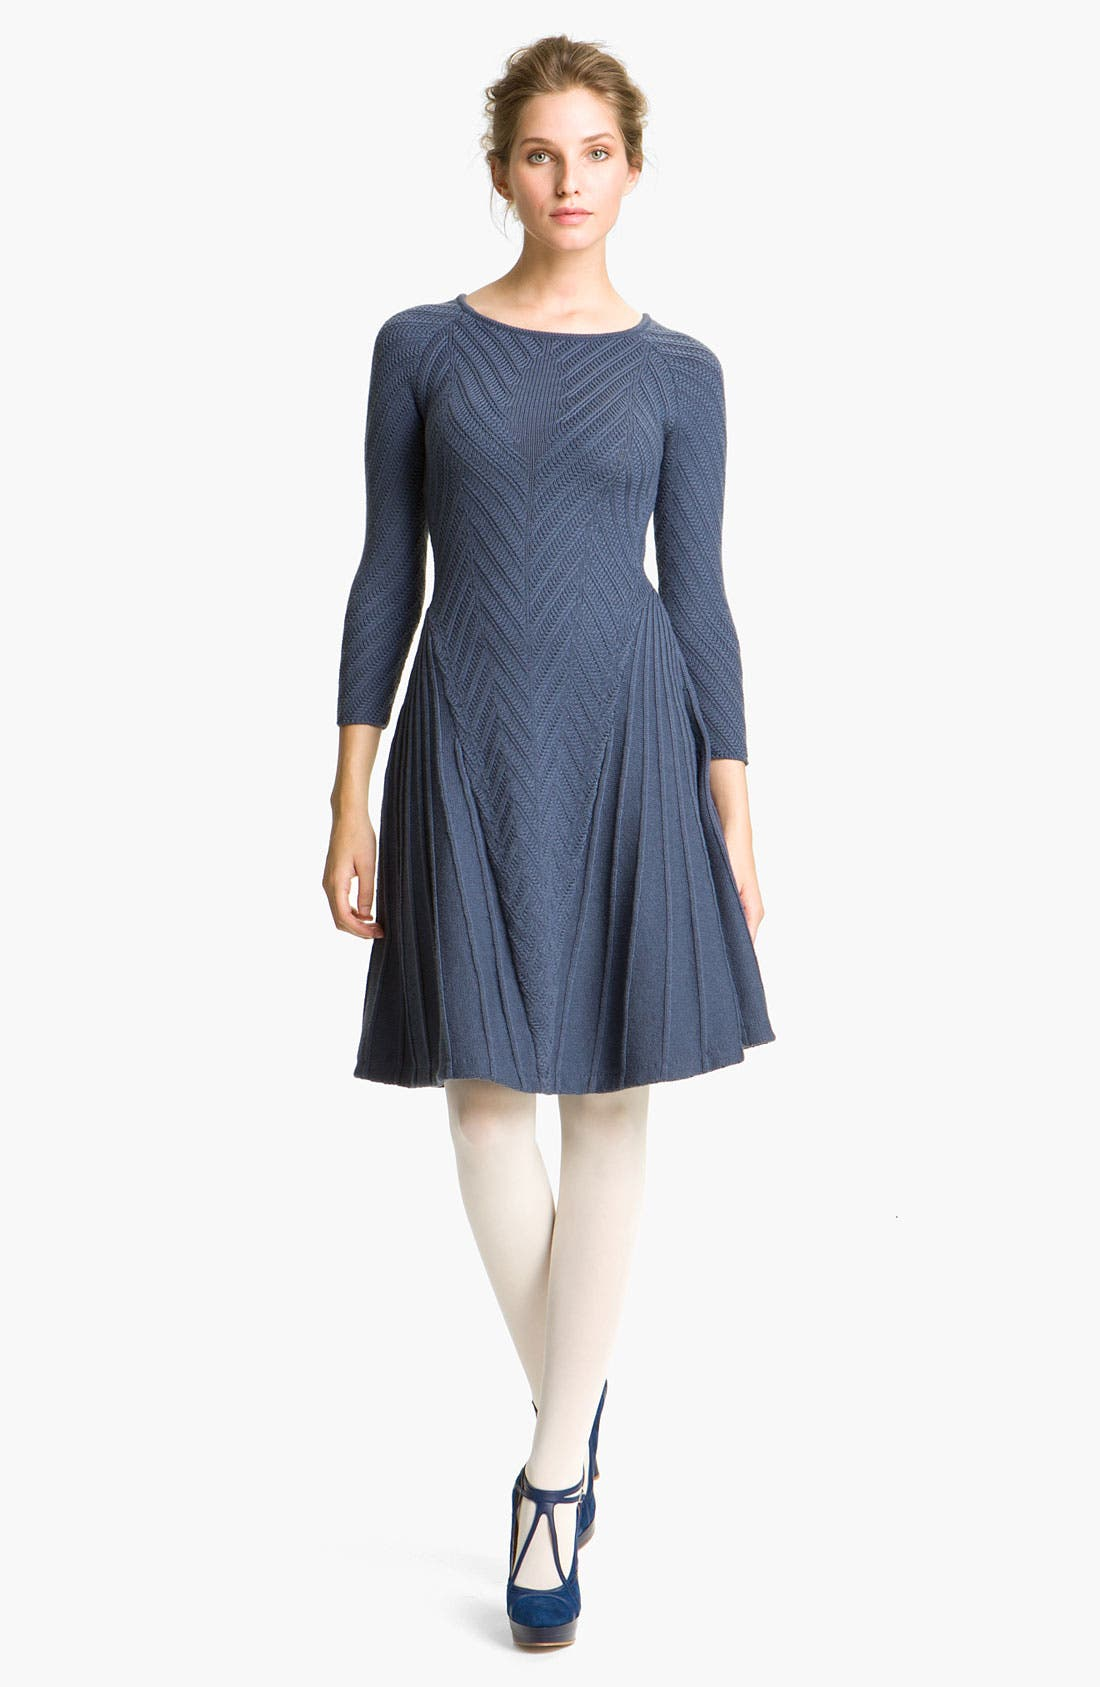 Alternate Image 1 Selected - Cacharel Chevron Knit Dress